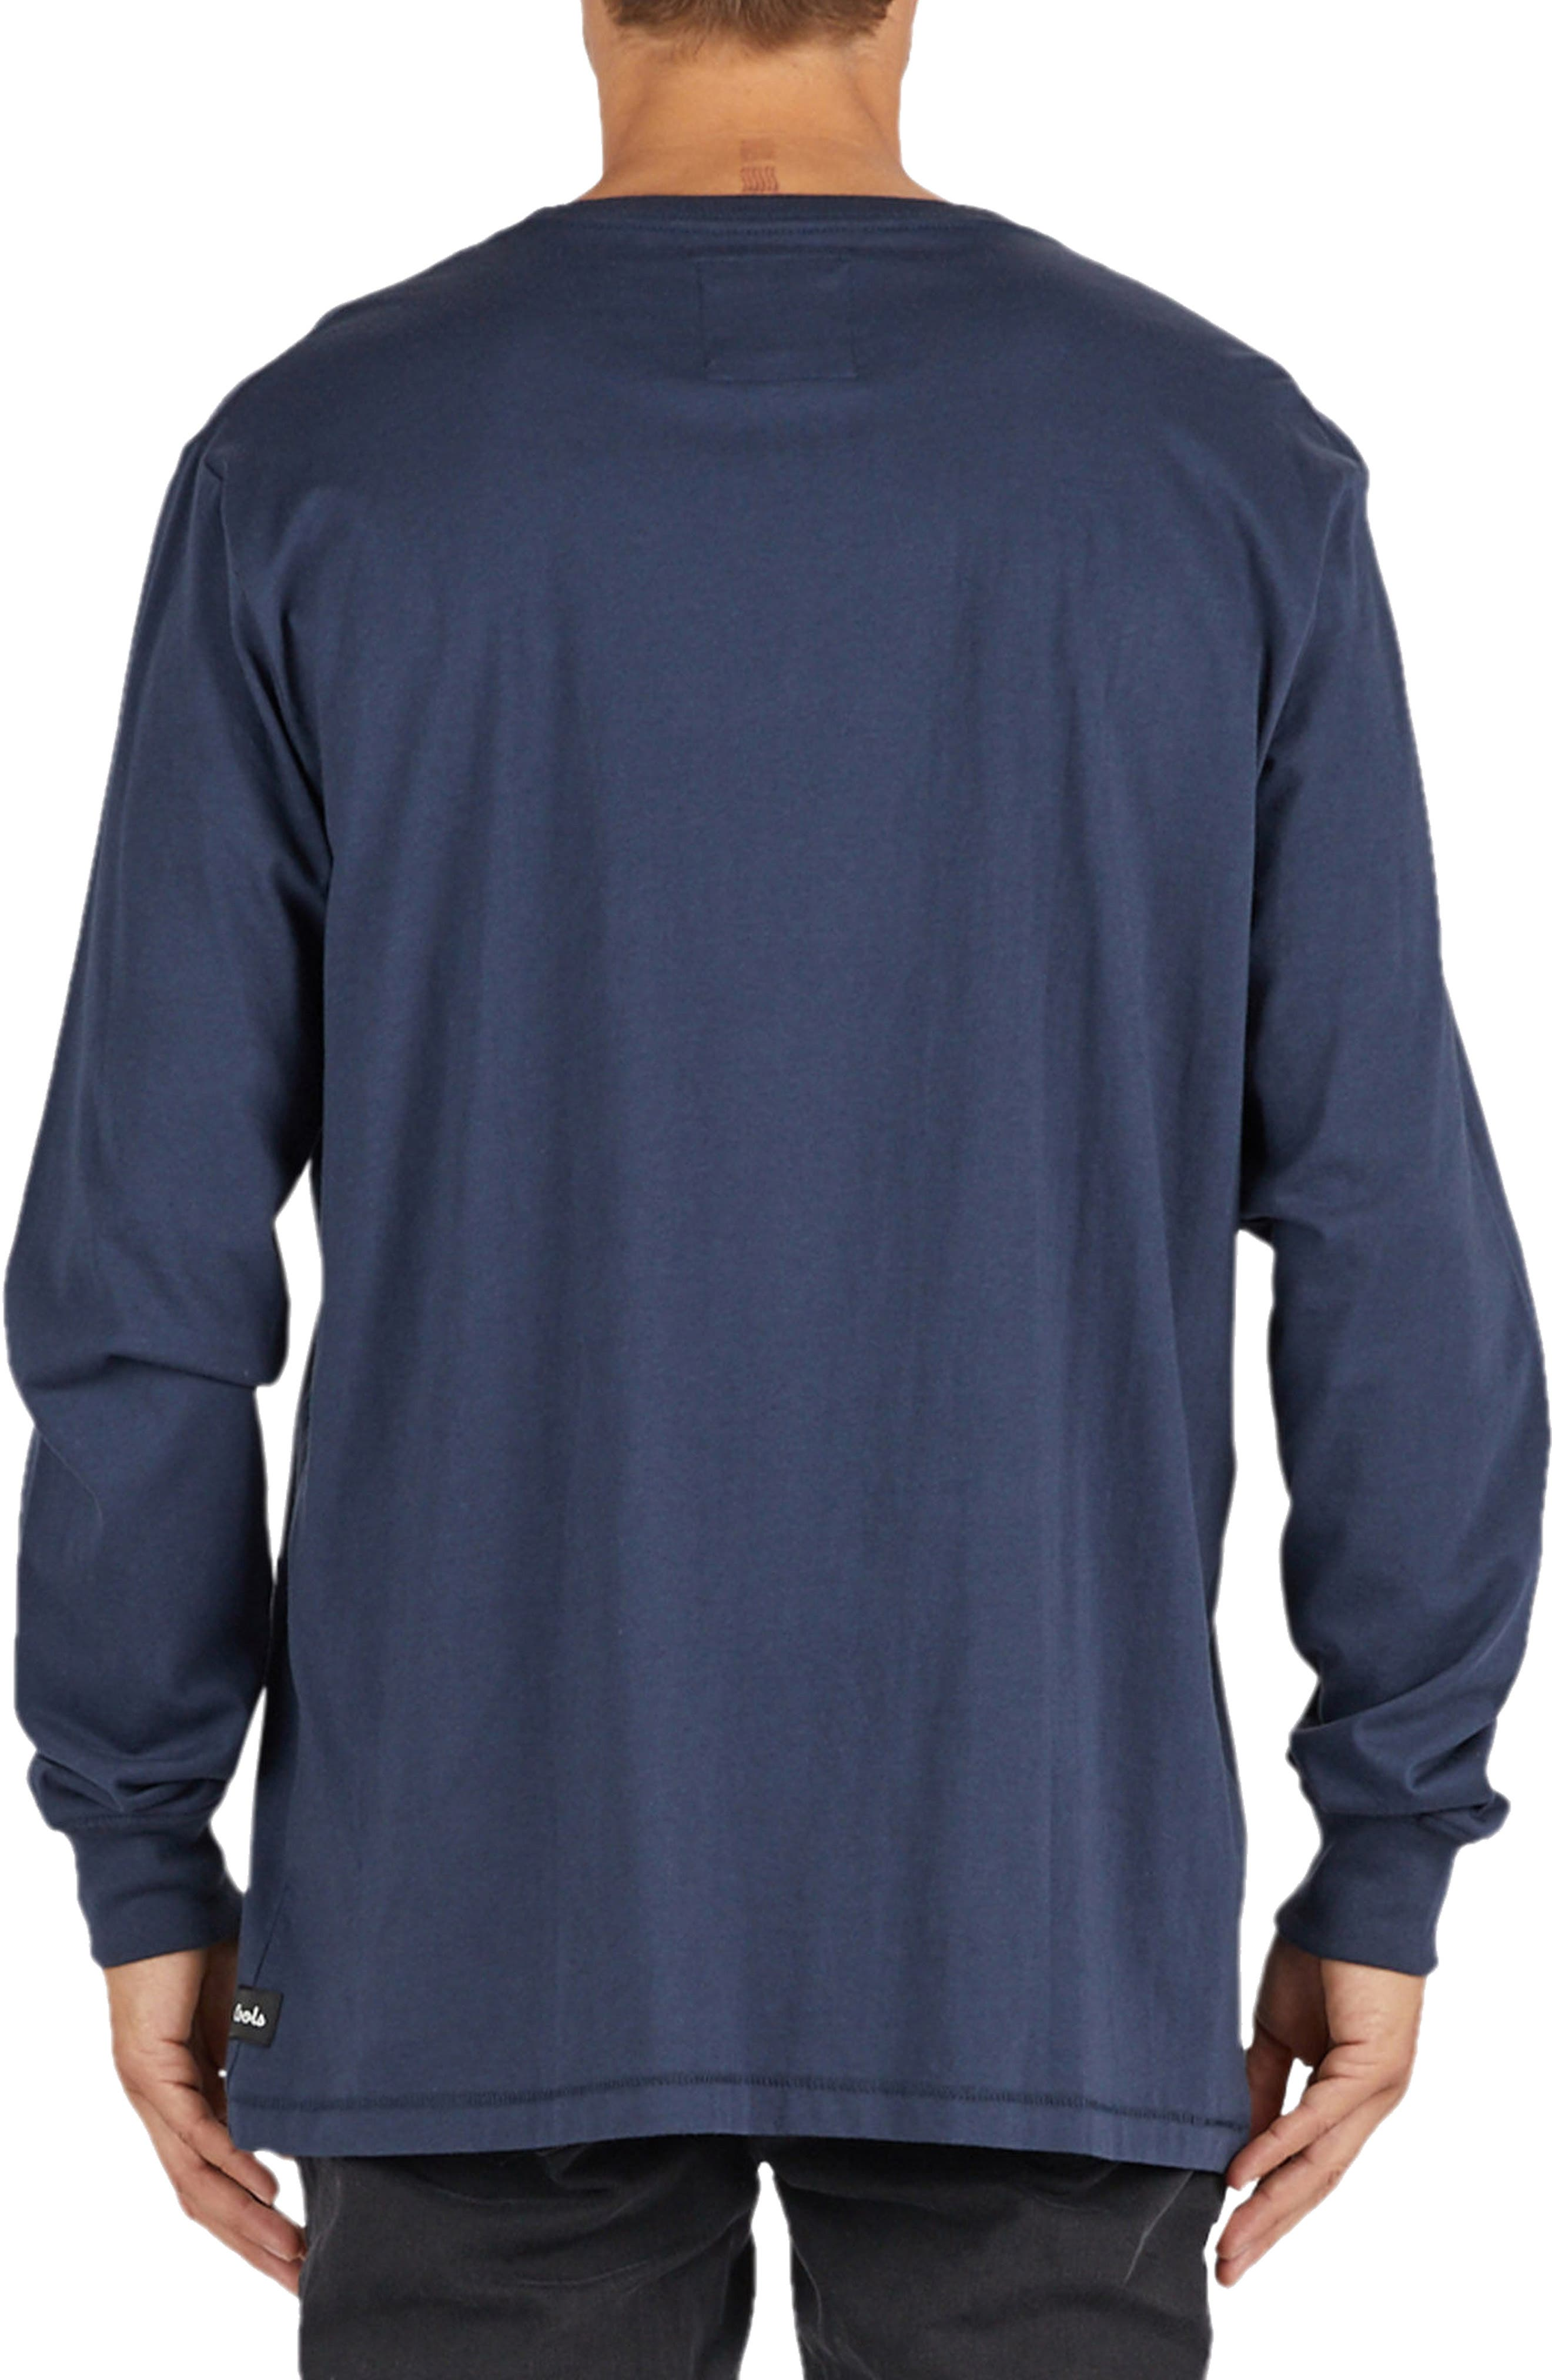 Relax Embroidered Long Sleeve T-Shirt,                             Alternate thumbnail 2, color,                             415